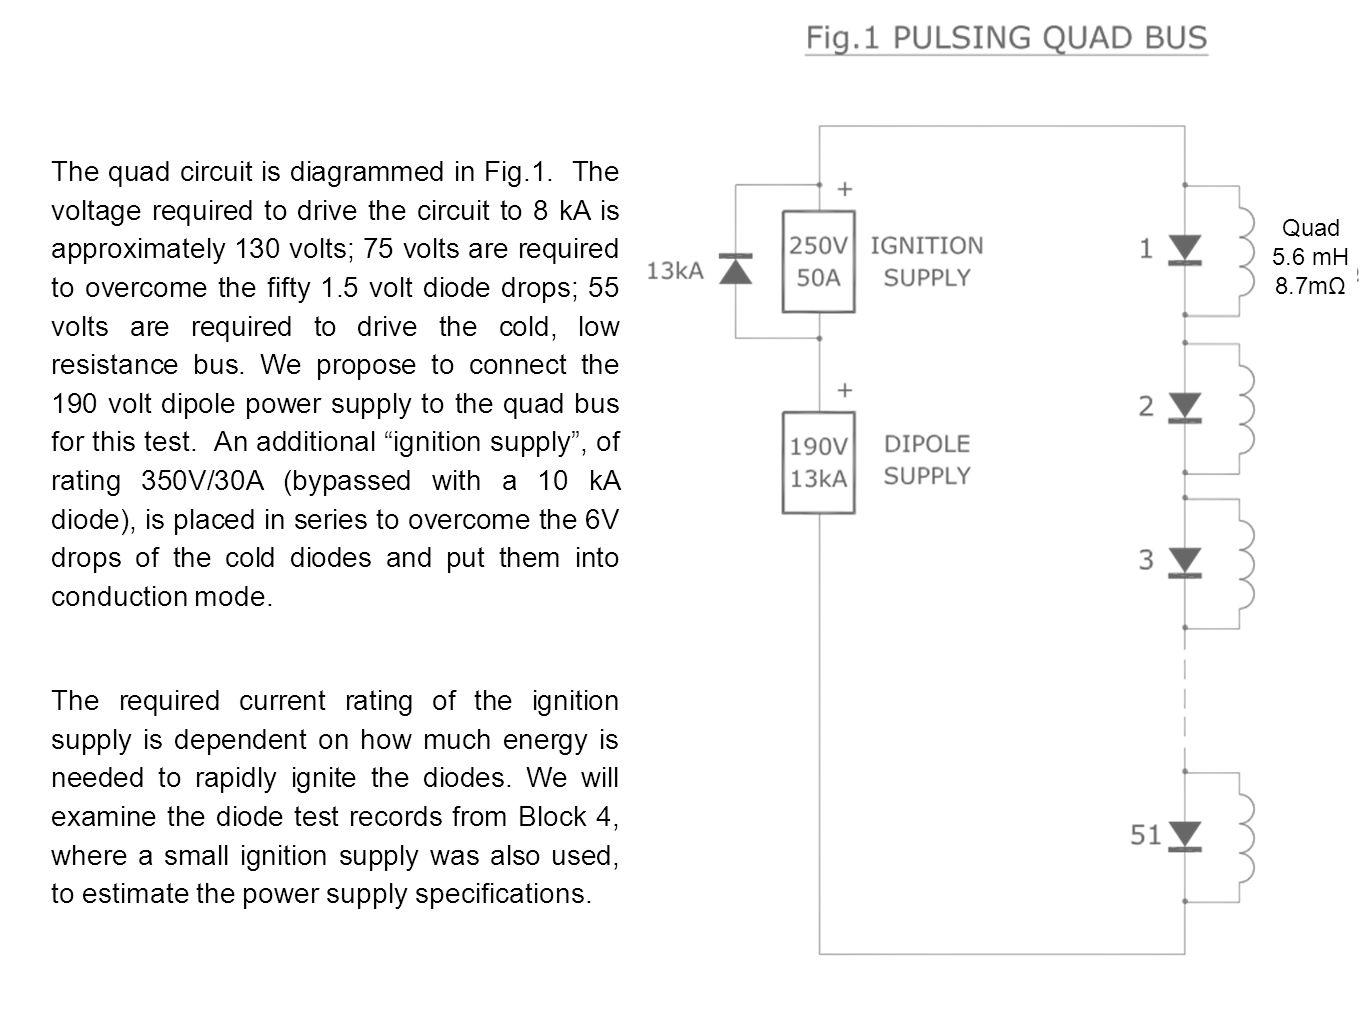 A PROPOSAL TO PULSE THE MAGNET BUSES TO VALIDATE SPLICE